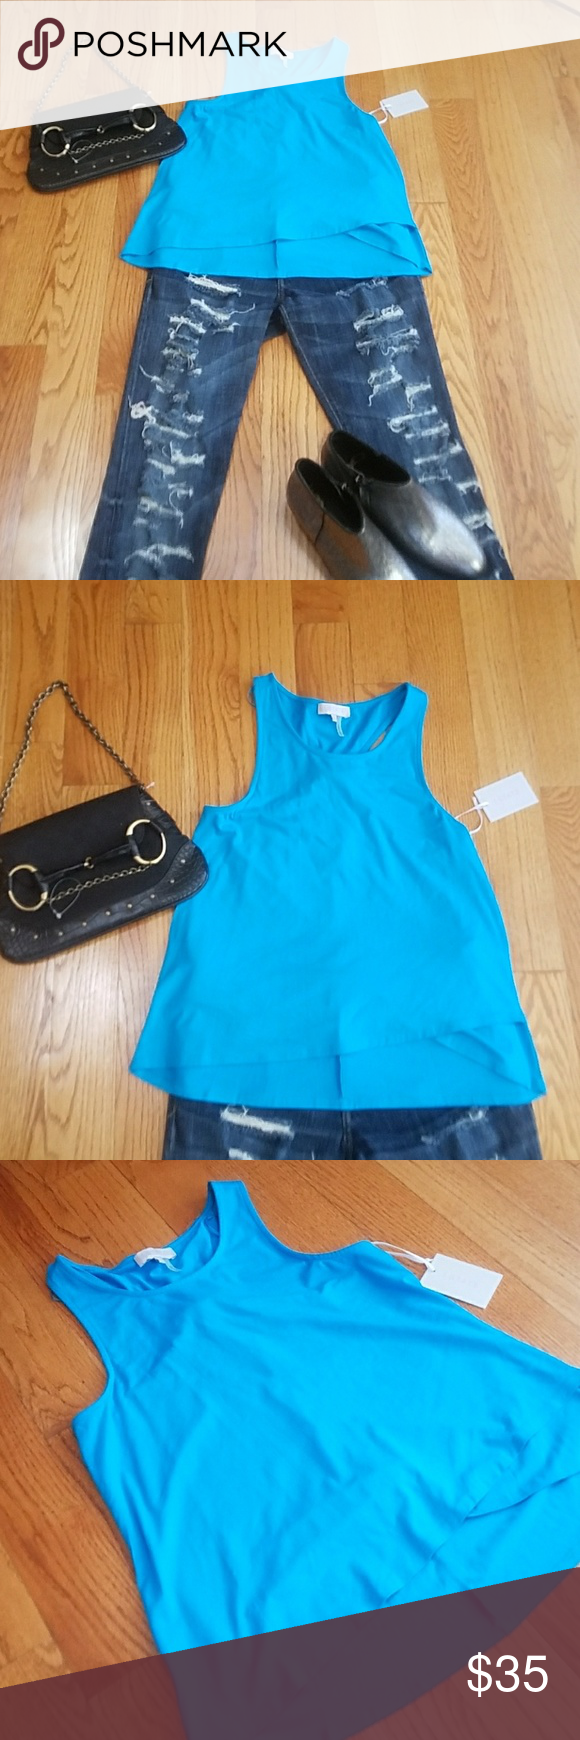 Nordstrom State Top NWT, Size small, gorgeous fabric State Top from Nordstrom, turqoise bright blue, cute detail state Tops